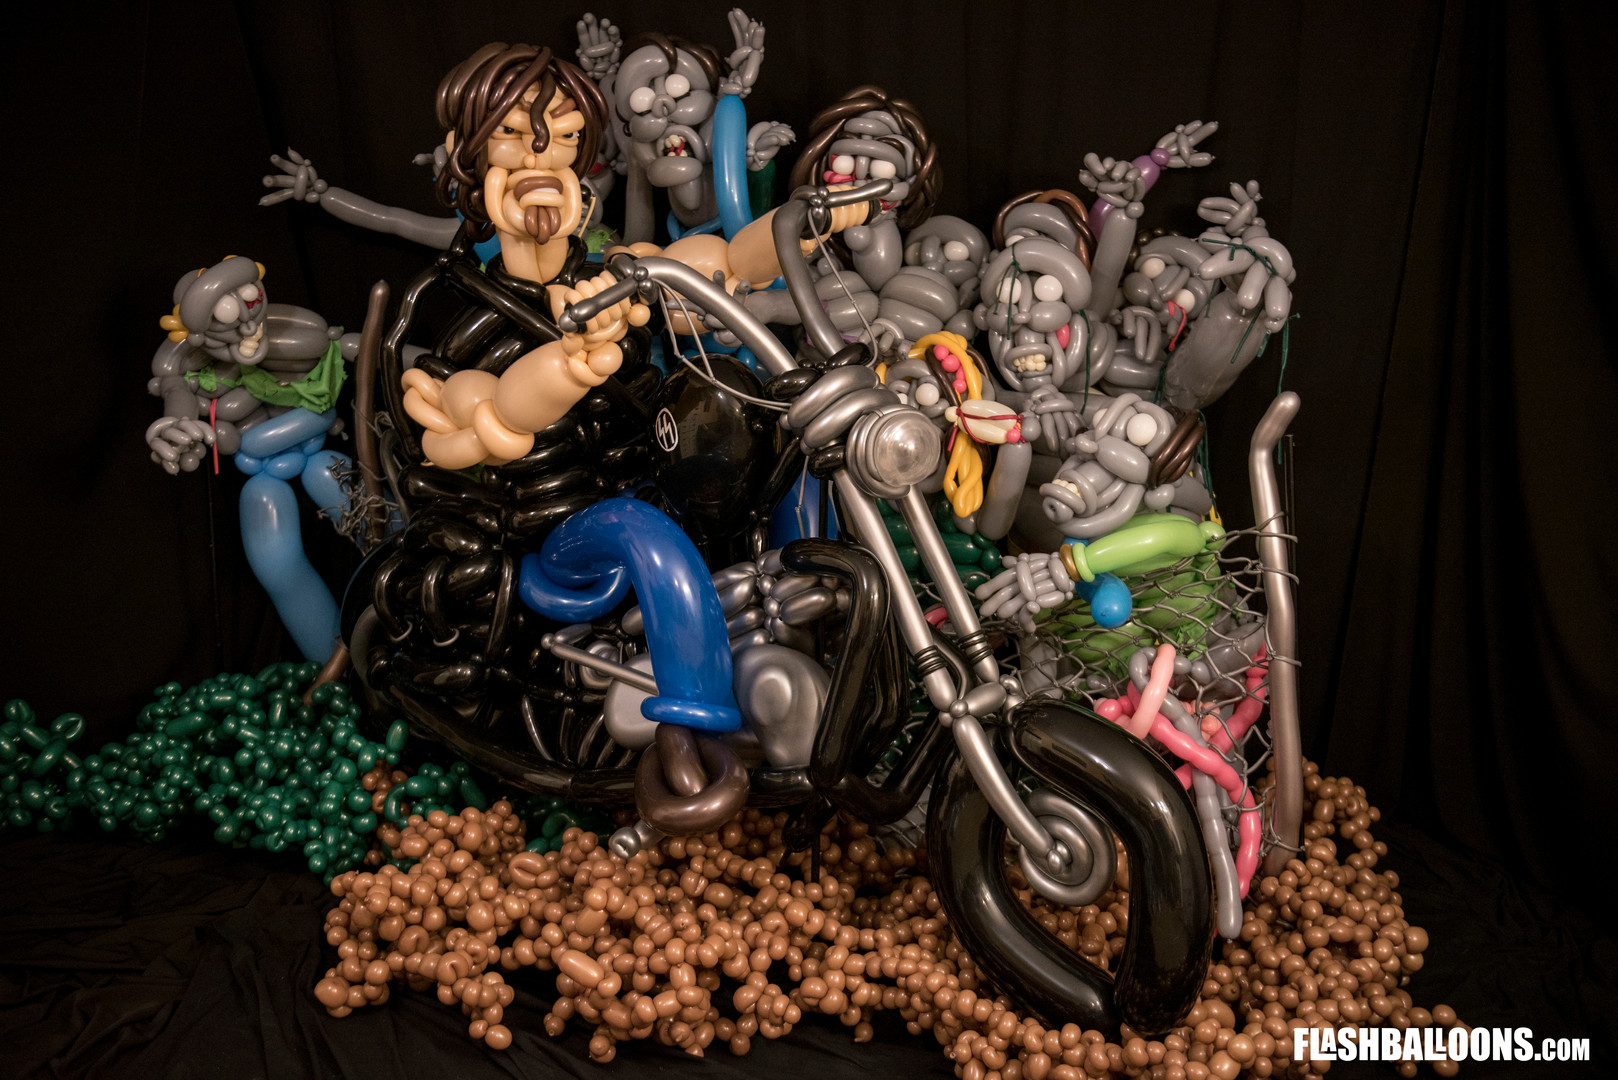 Daryl and the dead